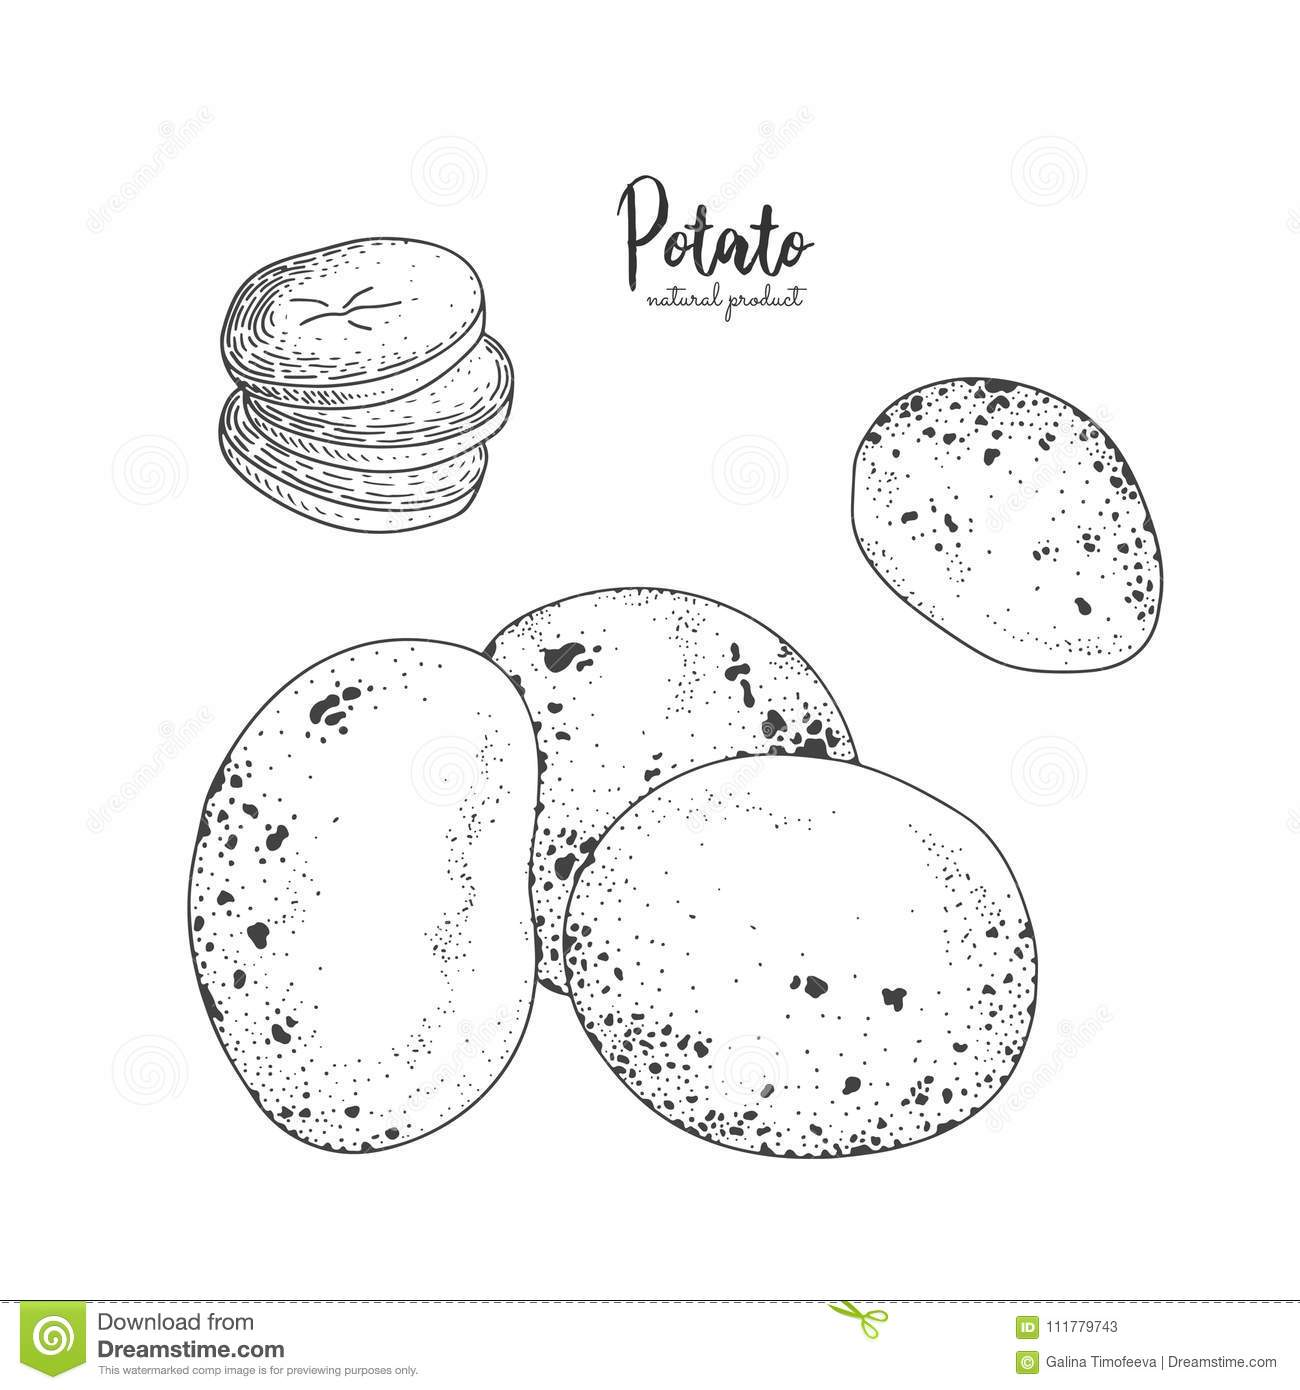 Potato hand drawn vector illustration. Isolated vegetable engraved style object. Detailed vegetarian food drawing. Farm